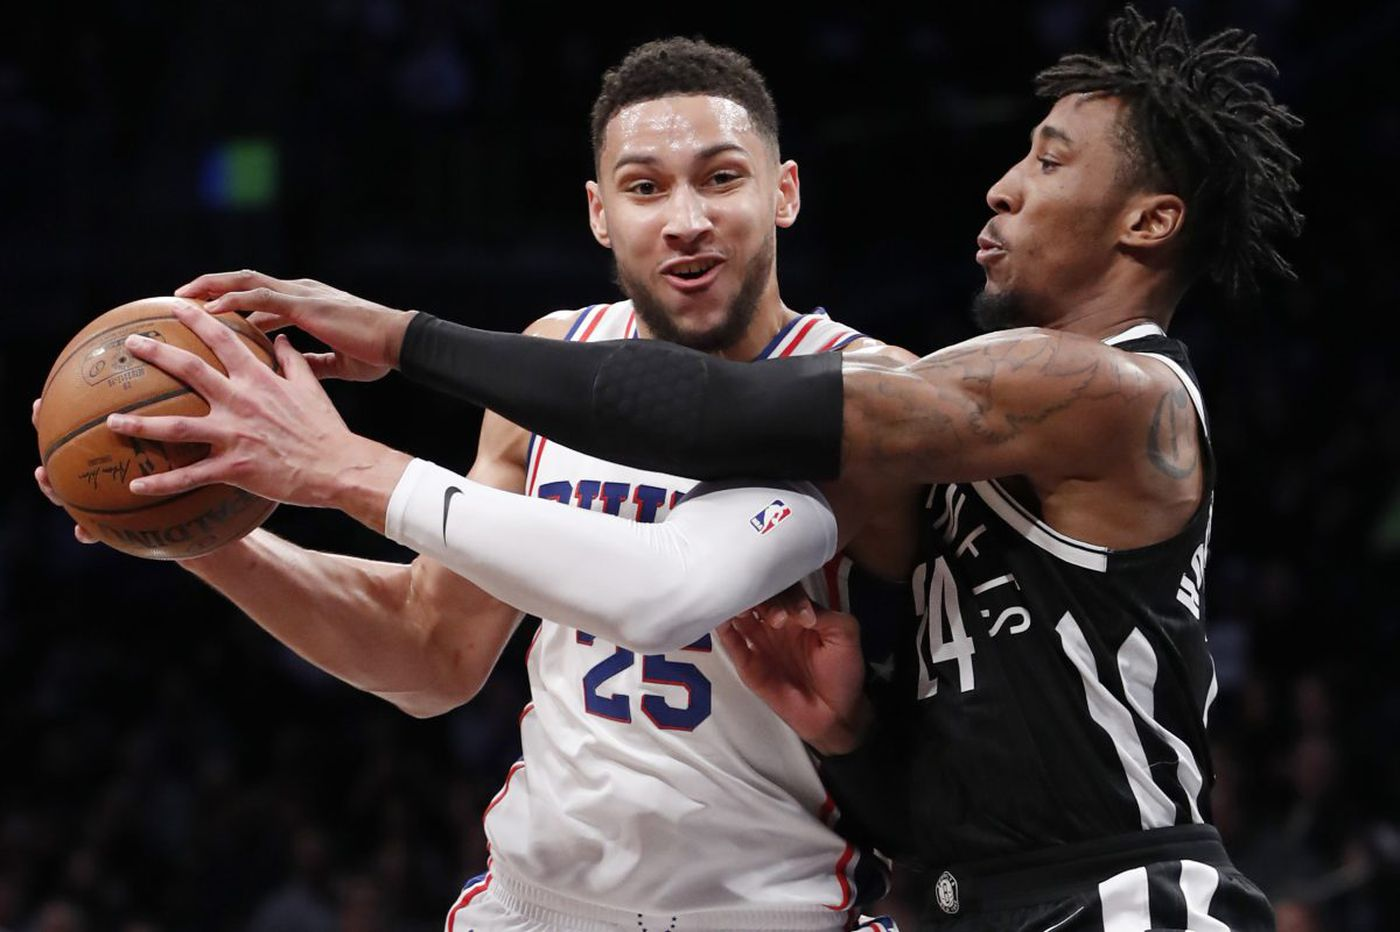 Sixers 120, Nets 97: T.J. McConnell's tough defense, a boosted bench, and other quick observations